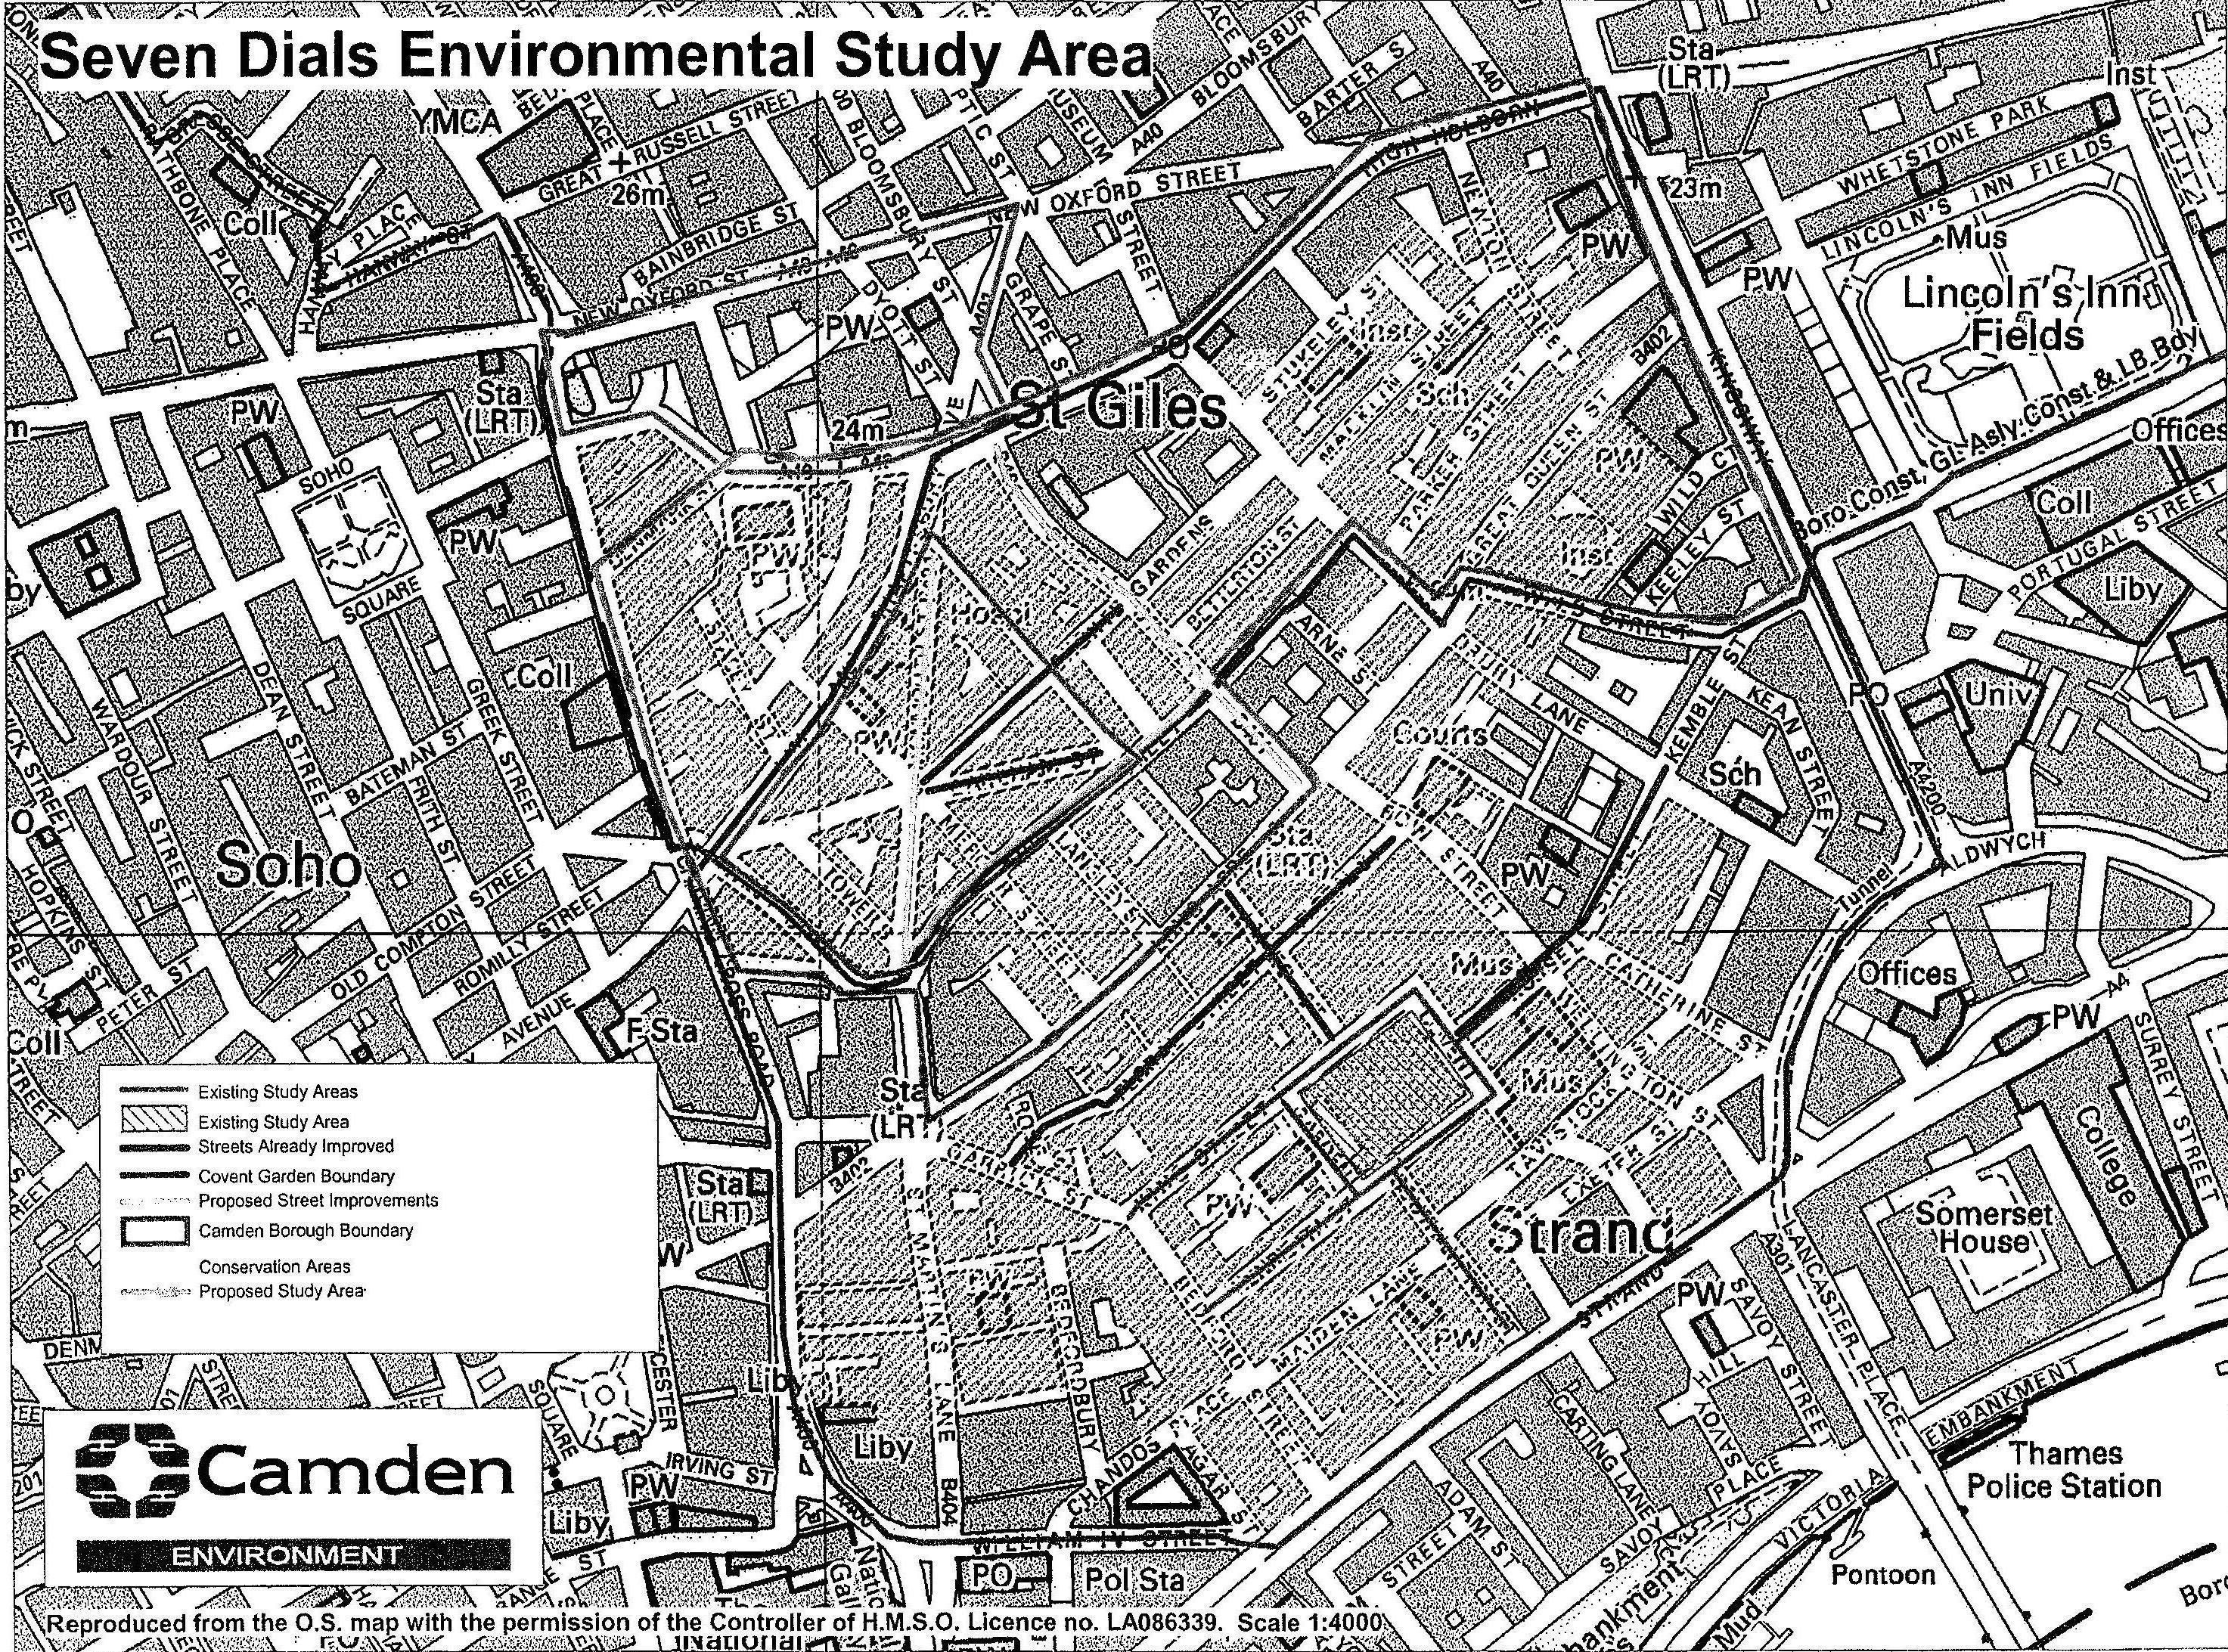 The Study area map 1987